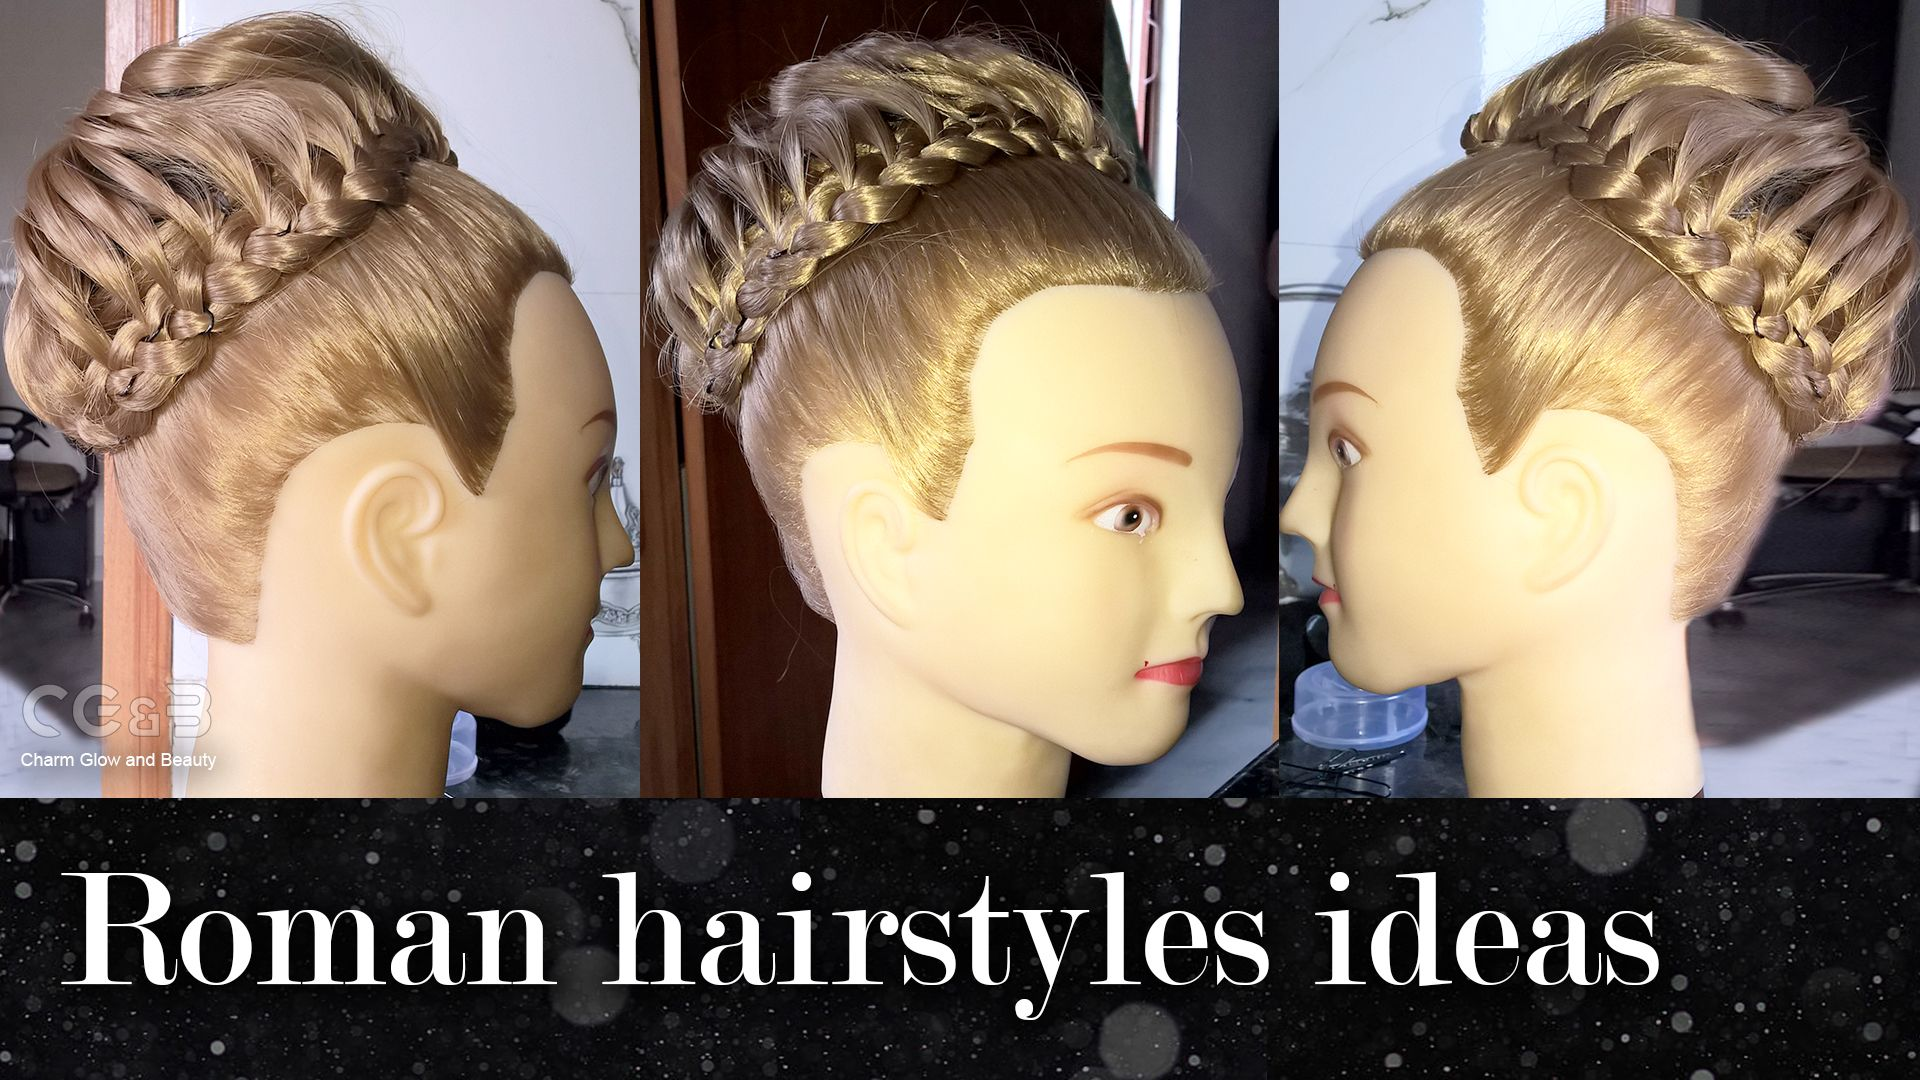 Old Roman Era Women Hairstyle - Hair styles in Ancient Rome